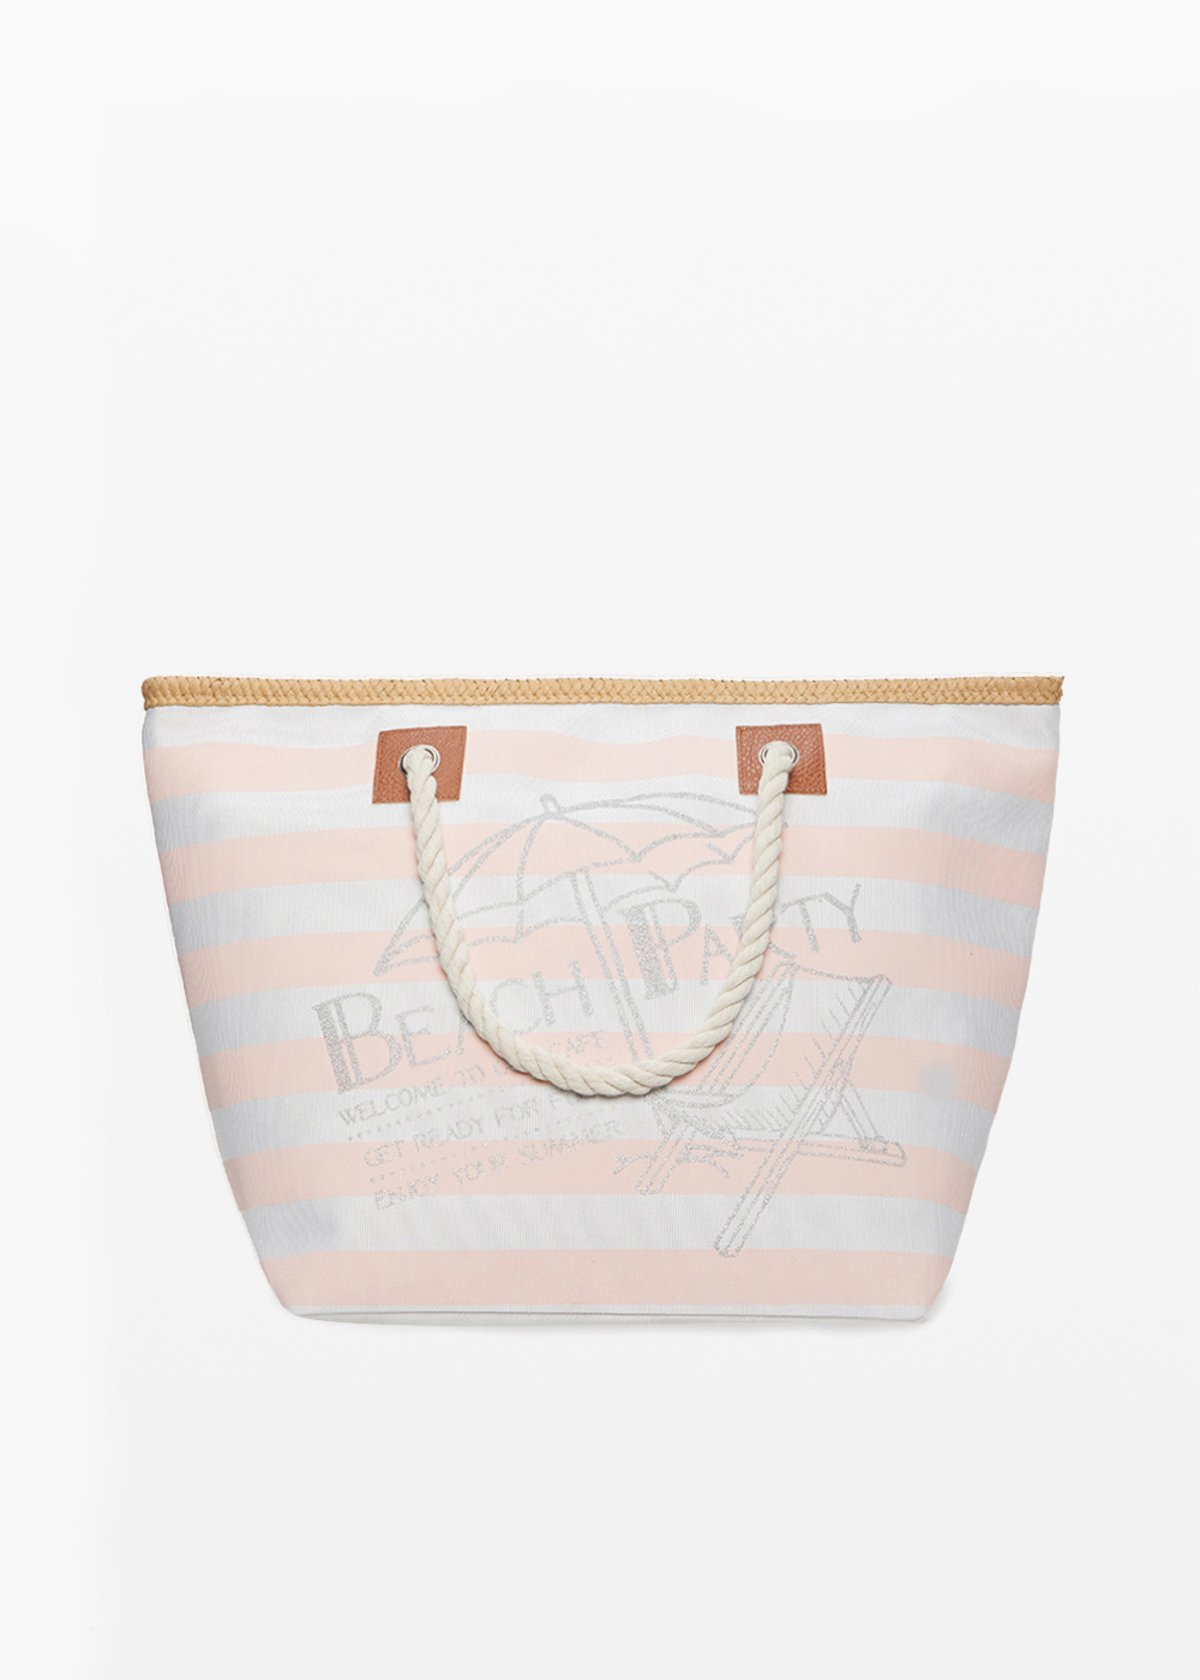 Shopping bag Barty stripes fantasy con profili in paglia - Oca Stripes - Donna - Immagine categoria